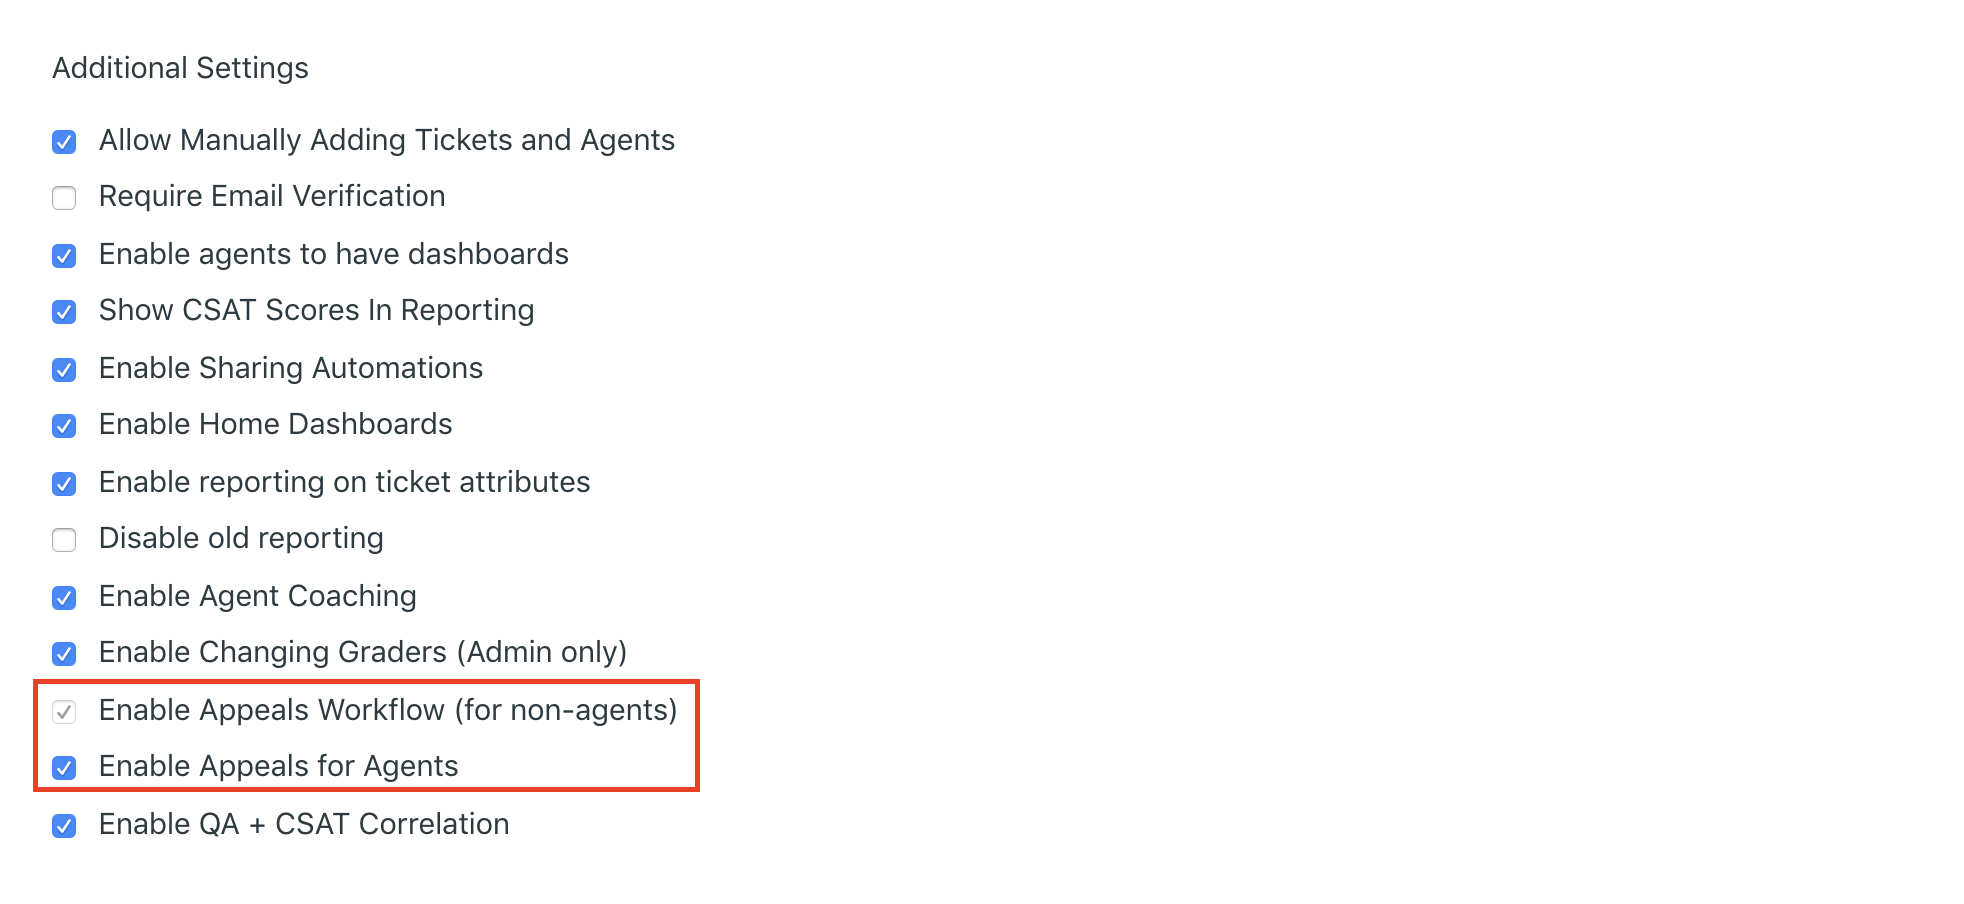 enable appeals for agents